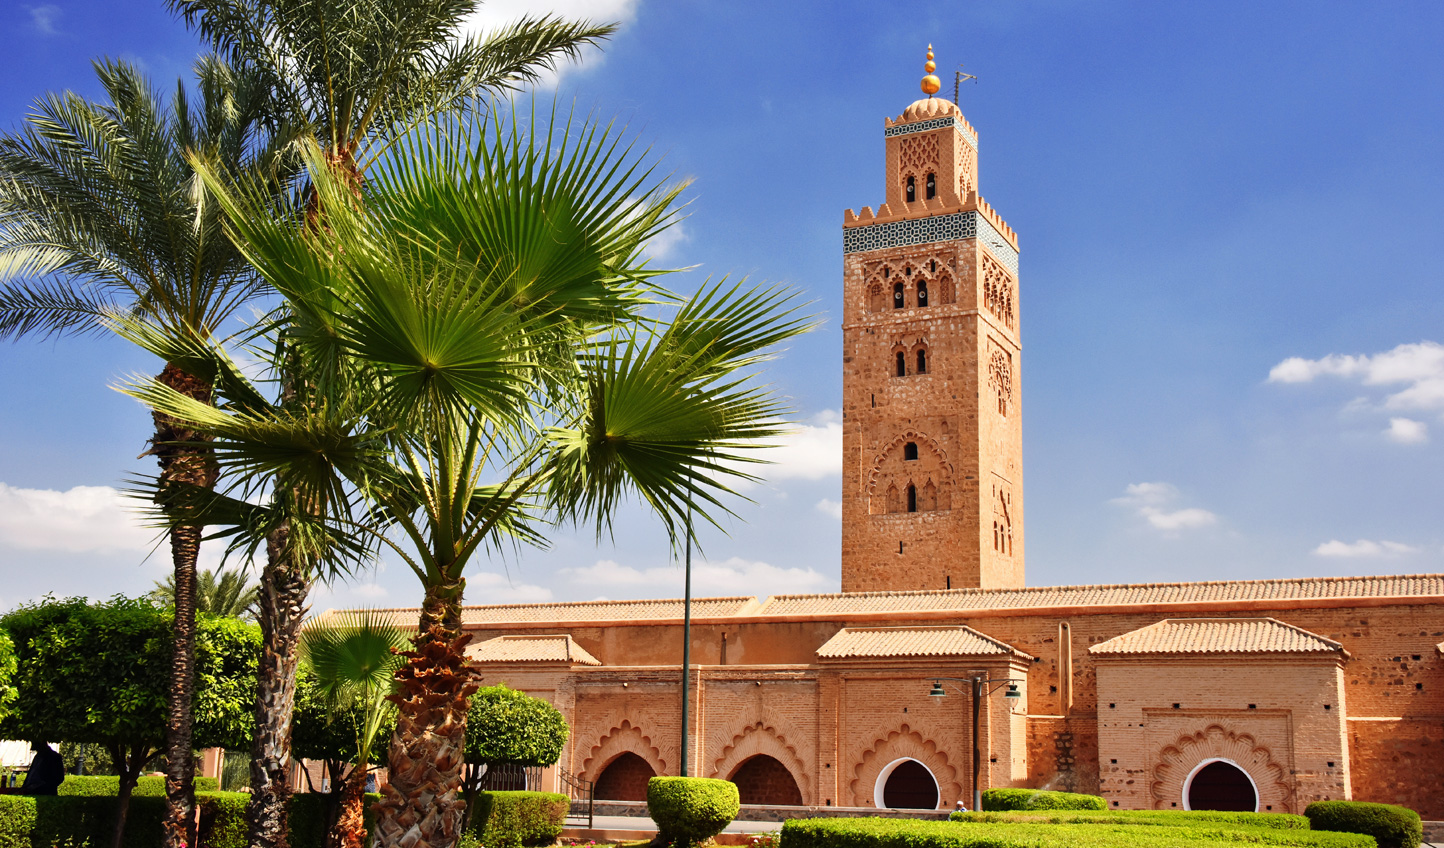 Days sound tracked by the Call to Prayer emanating from the Koutoubia Mosque